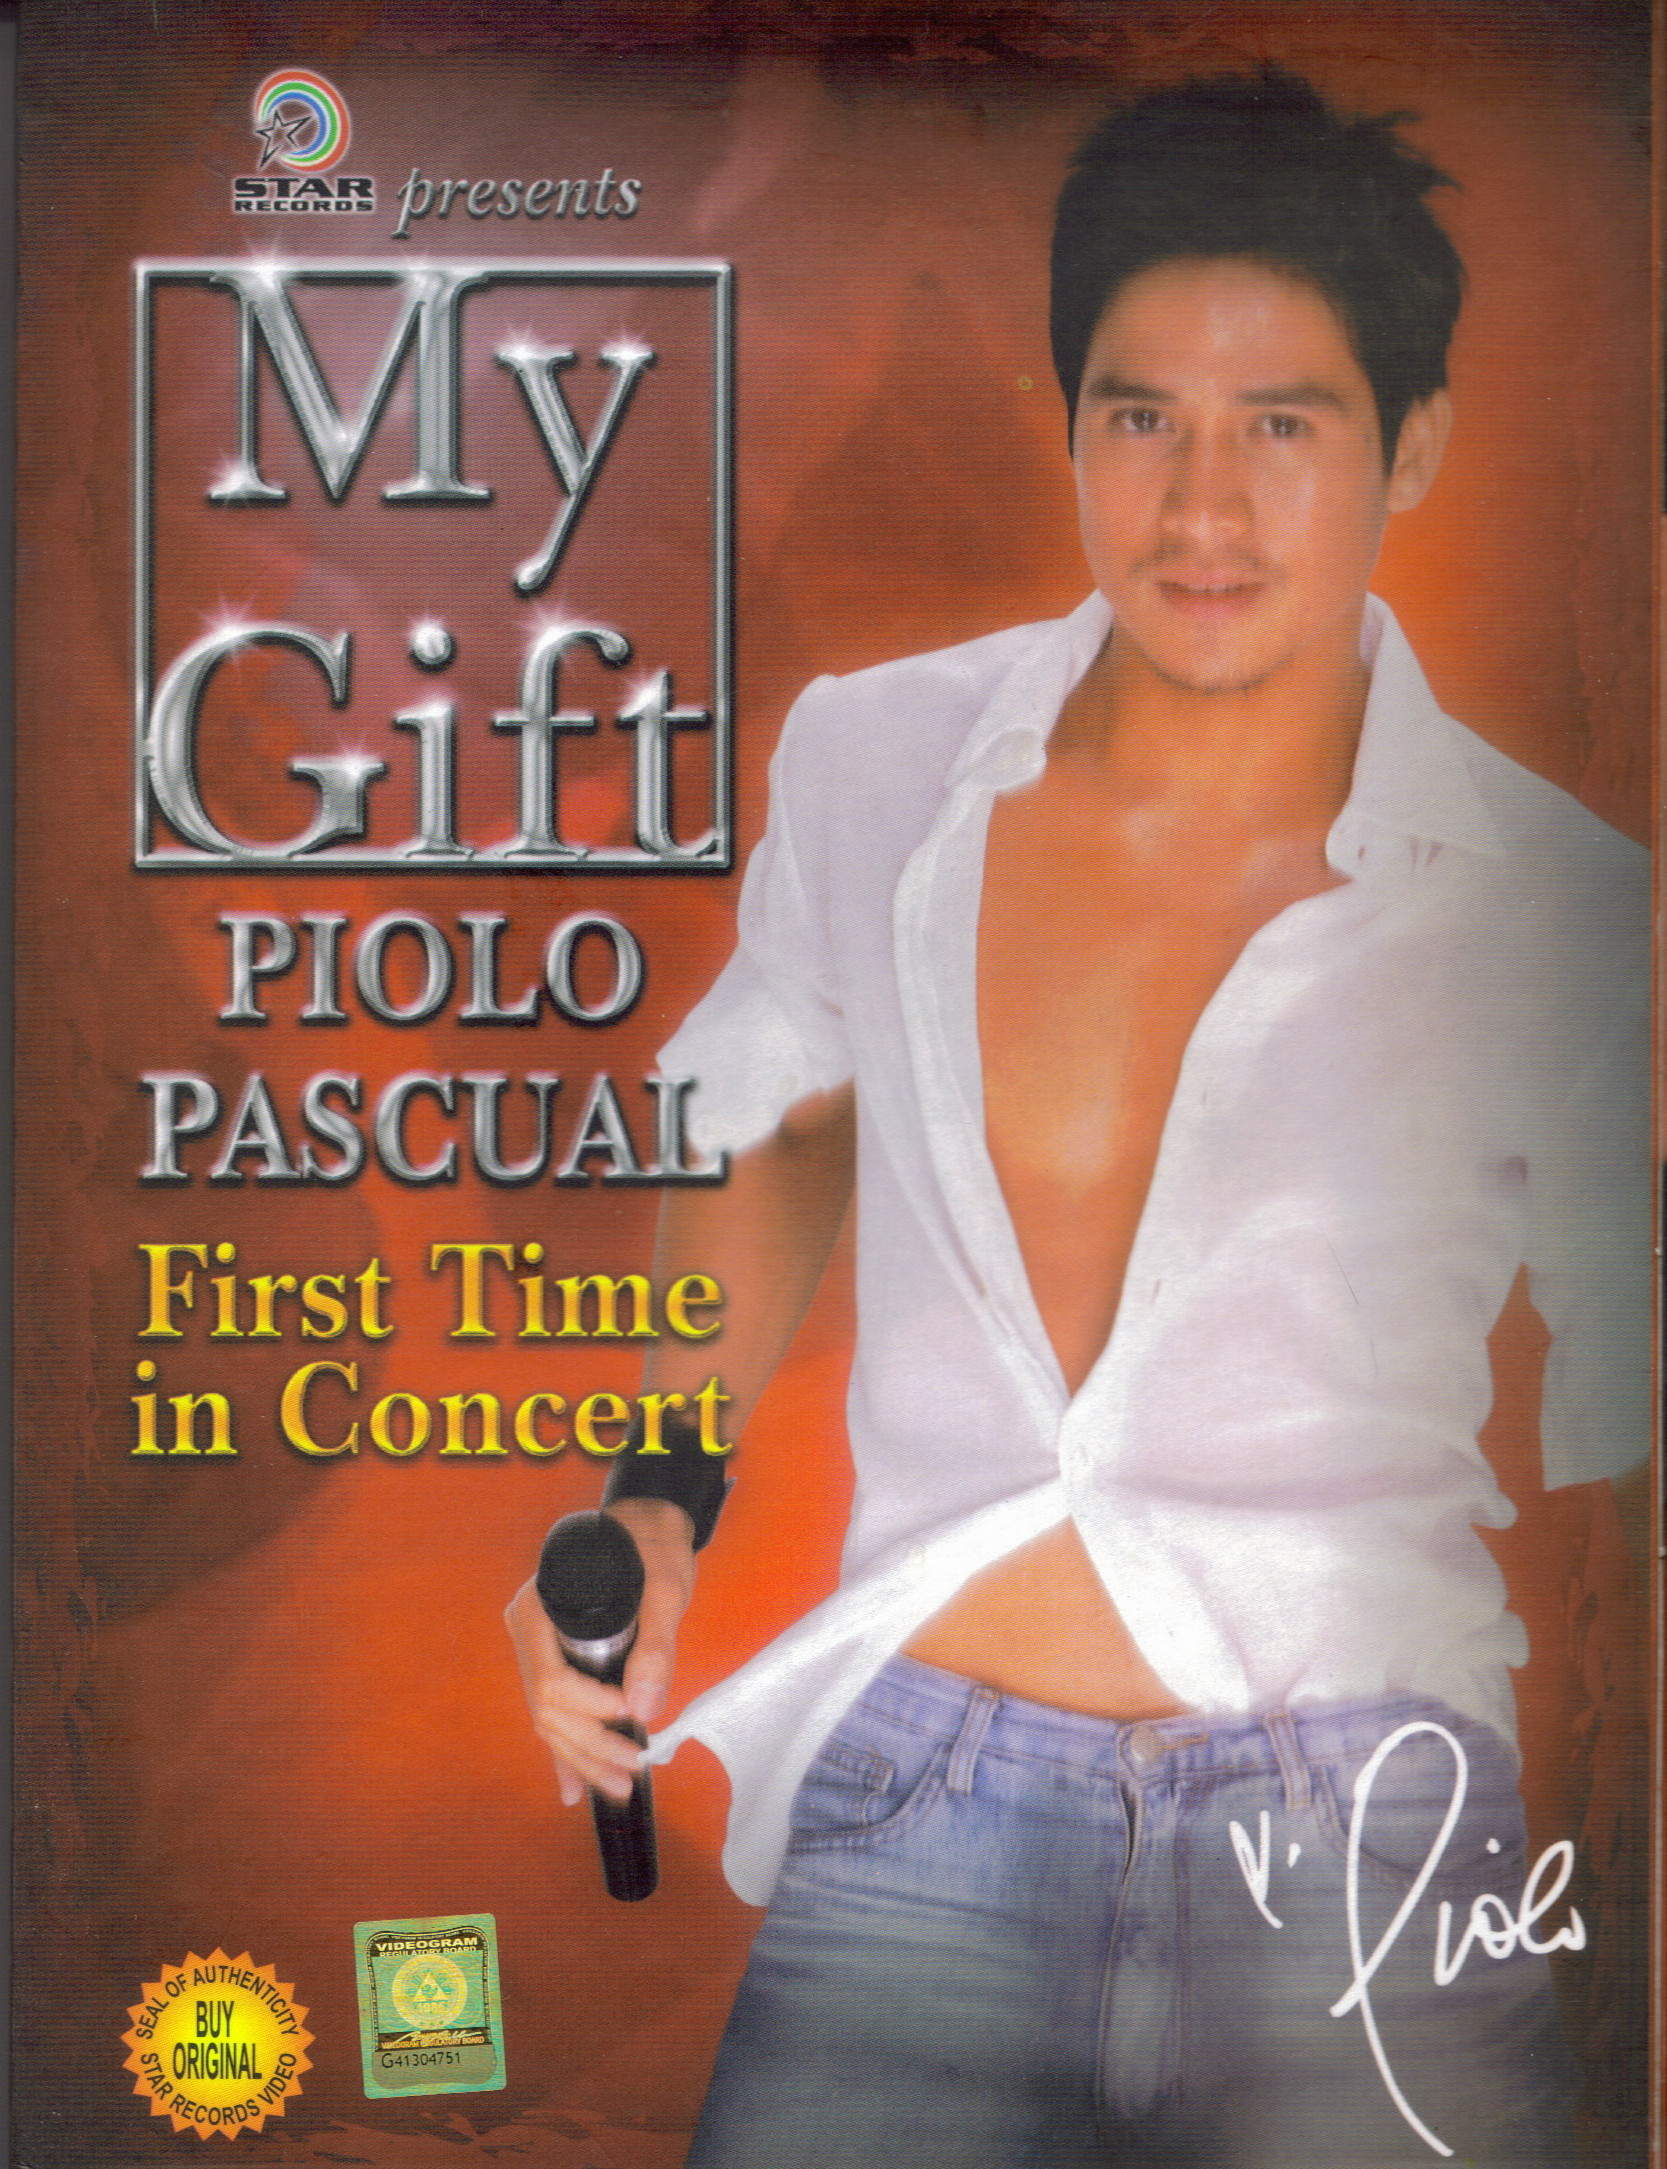 Piolo Pascual: My Gift